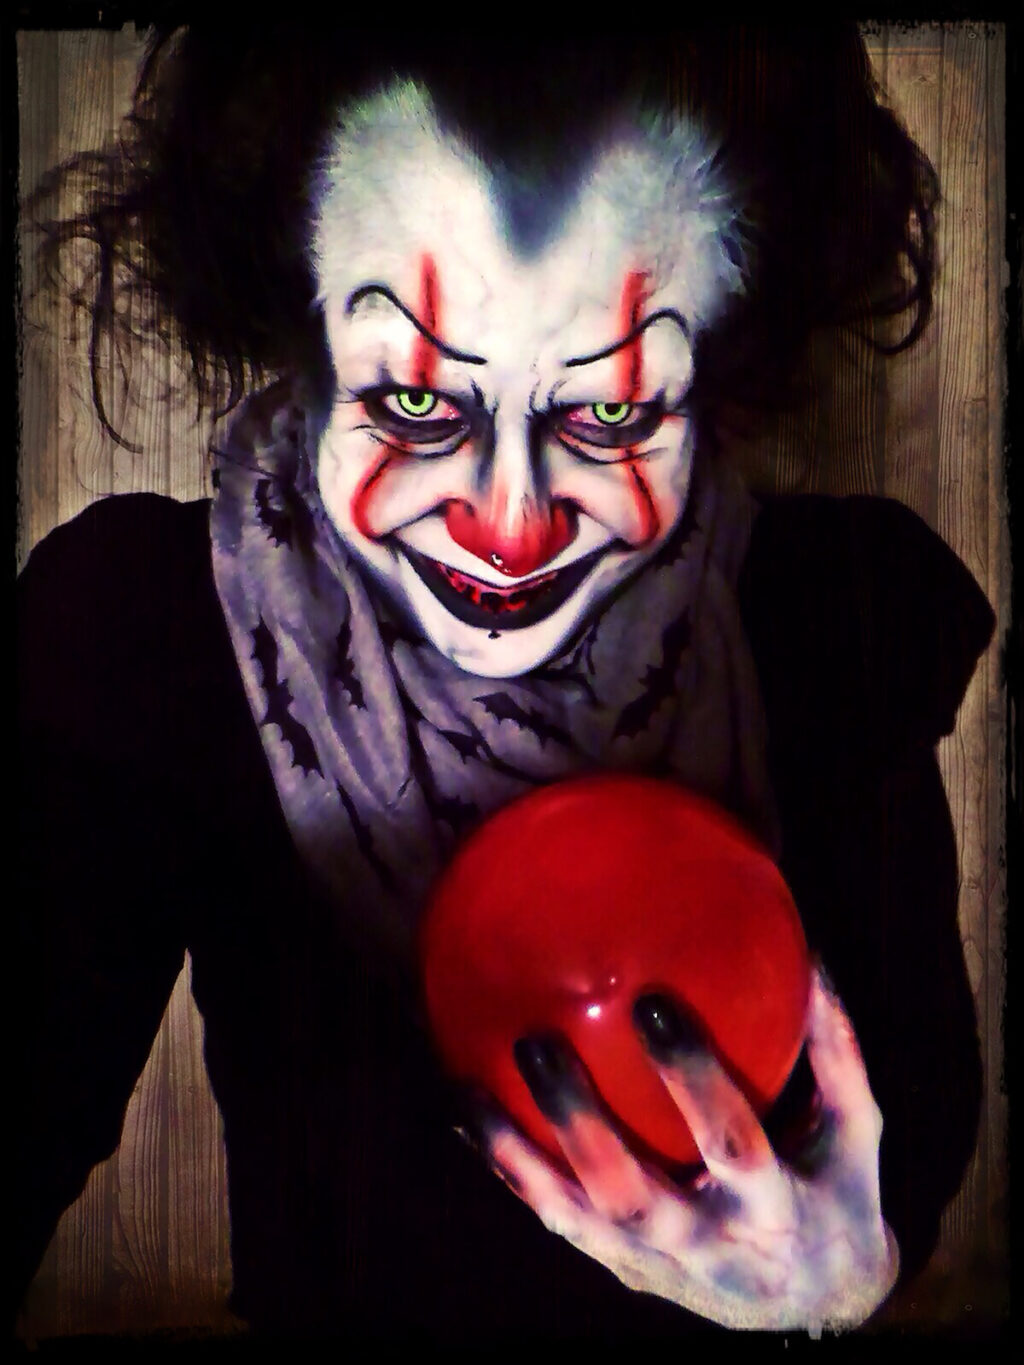 jacquielanternpennywise 1024x1365 - Check Out Jacquie Lantern's Fantastic Pennywise/It Makeup Transformation